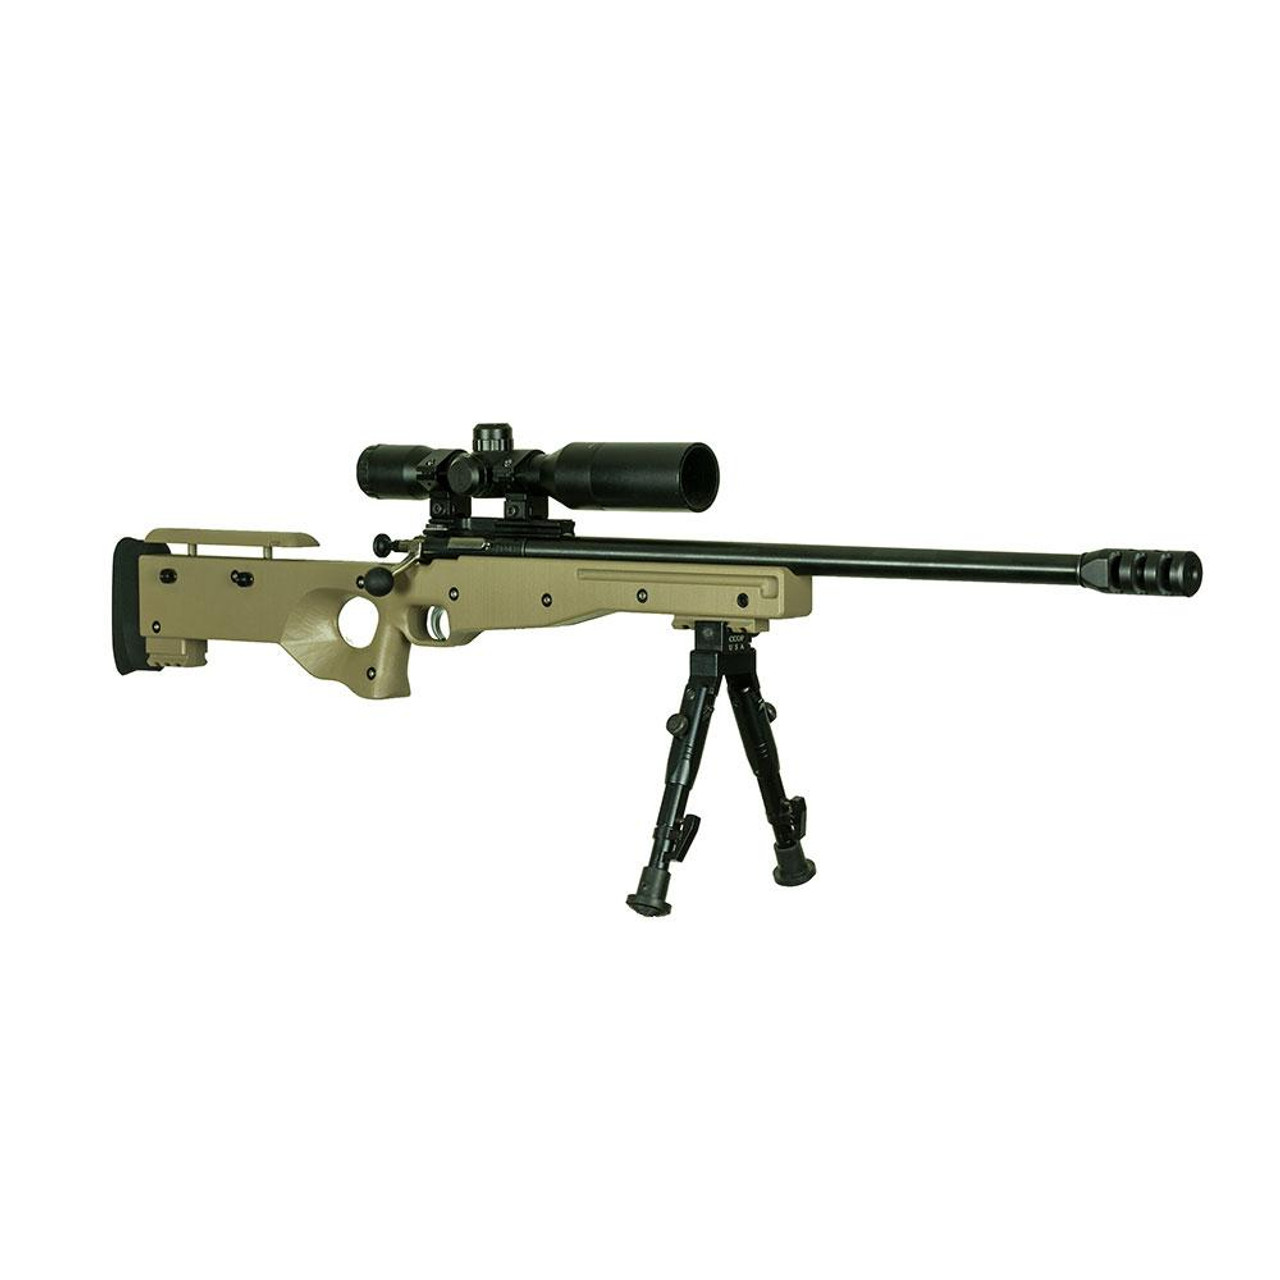 Crickett Precision Rifle 22LR with Scope & Bipod